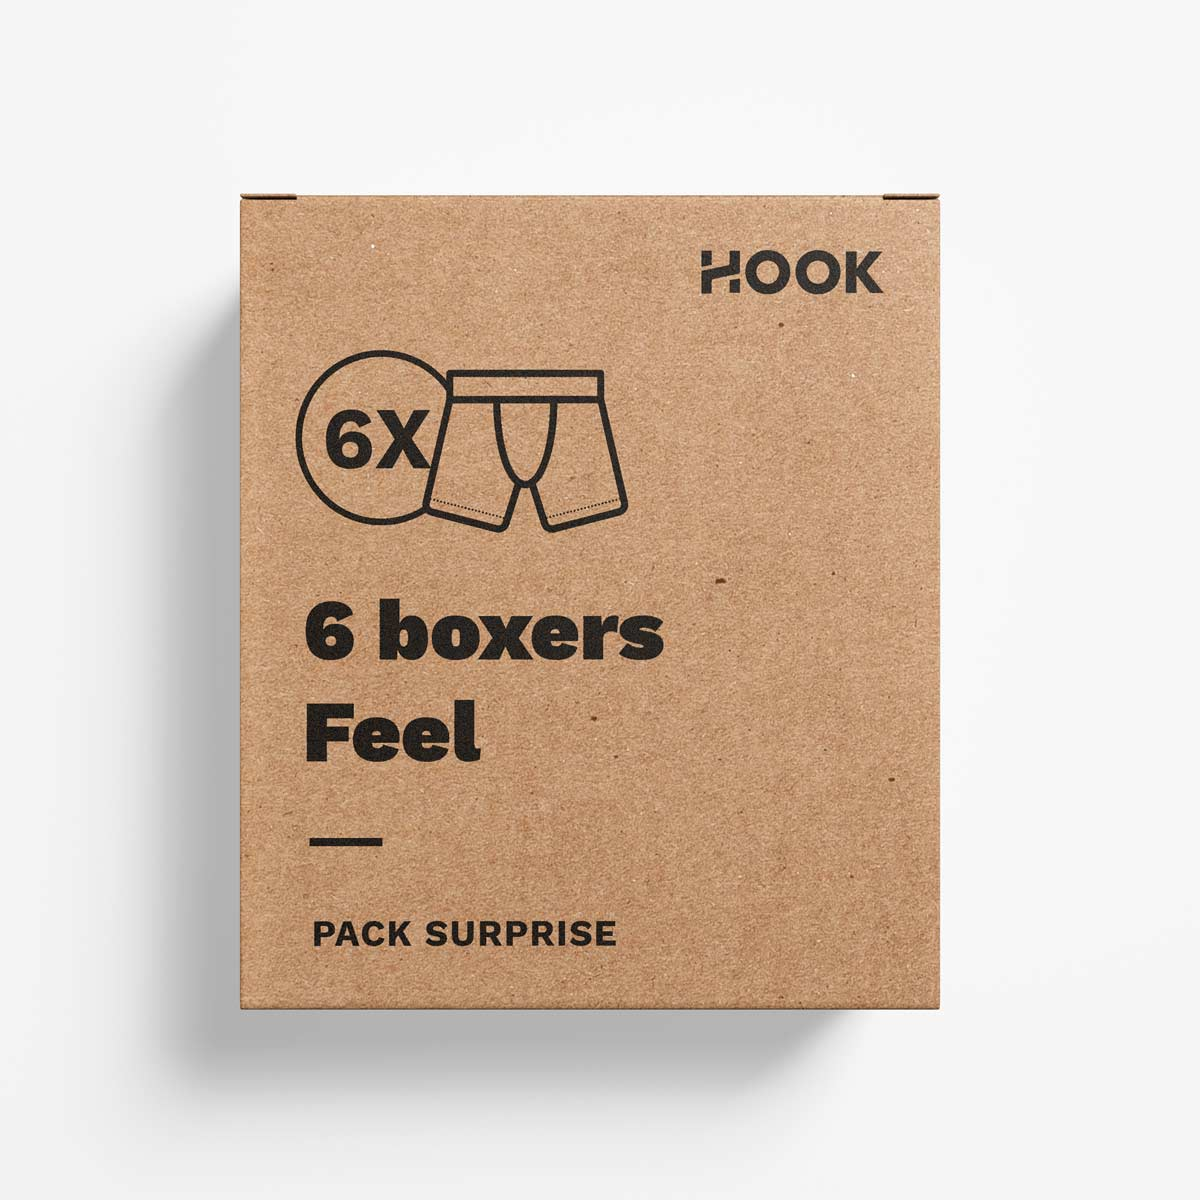 Boxer Feel par Hook : pack de 6 boxers